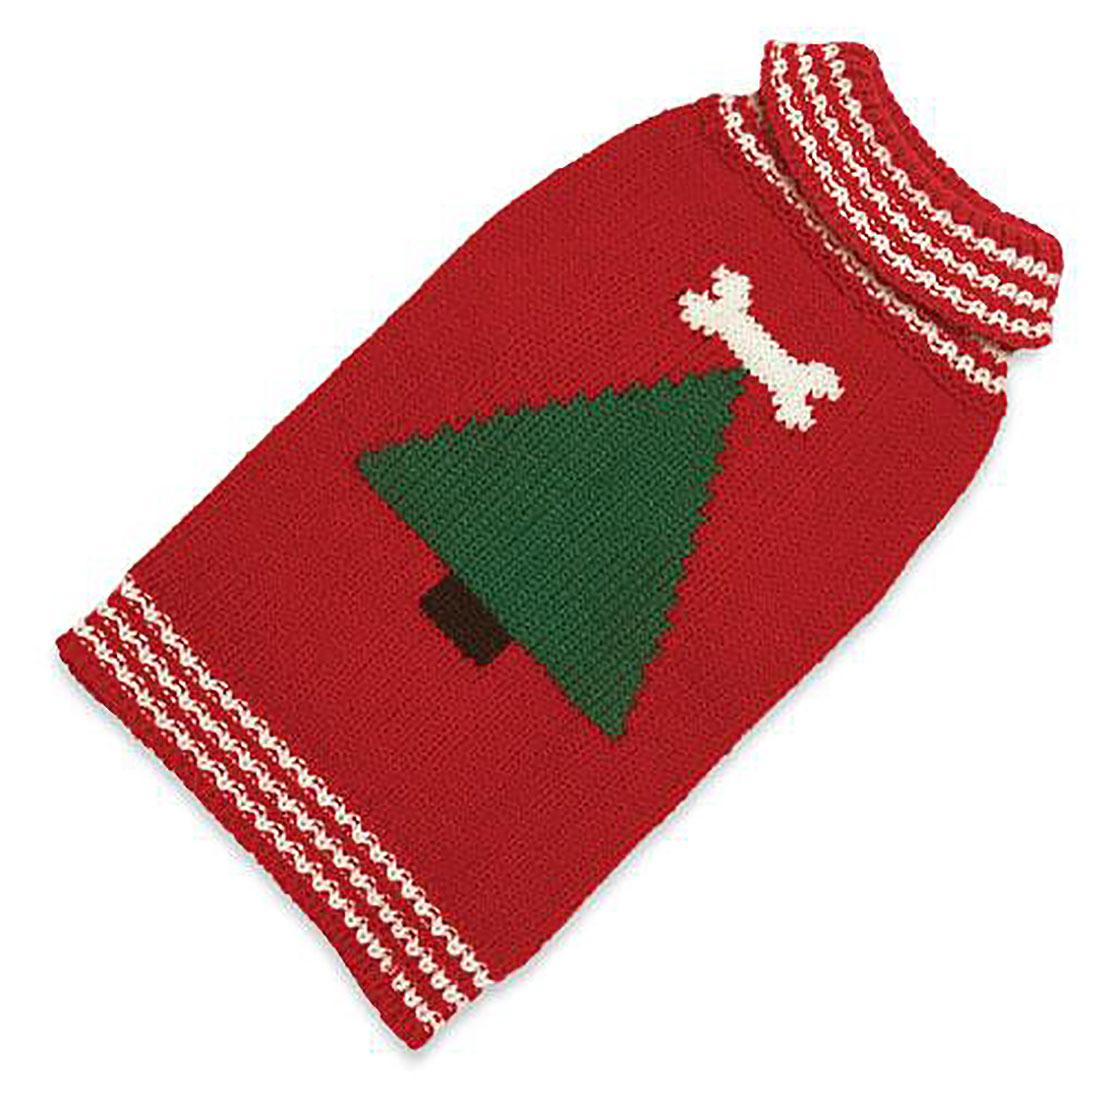 Hand Knit Dog Sweater by Up Country - Christmas Tree